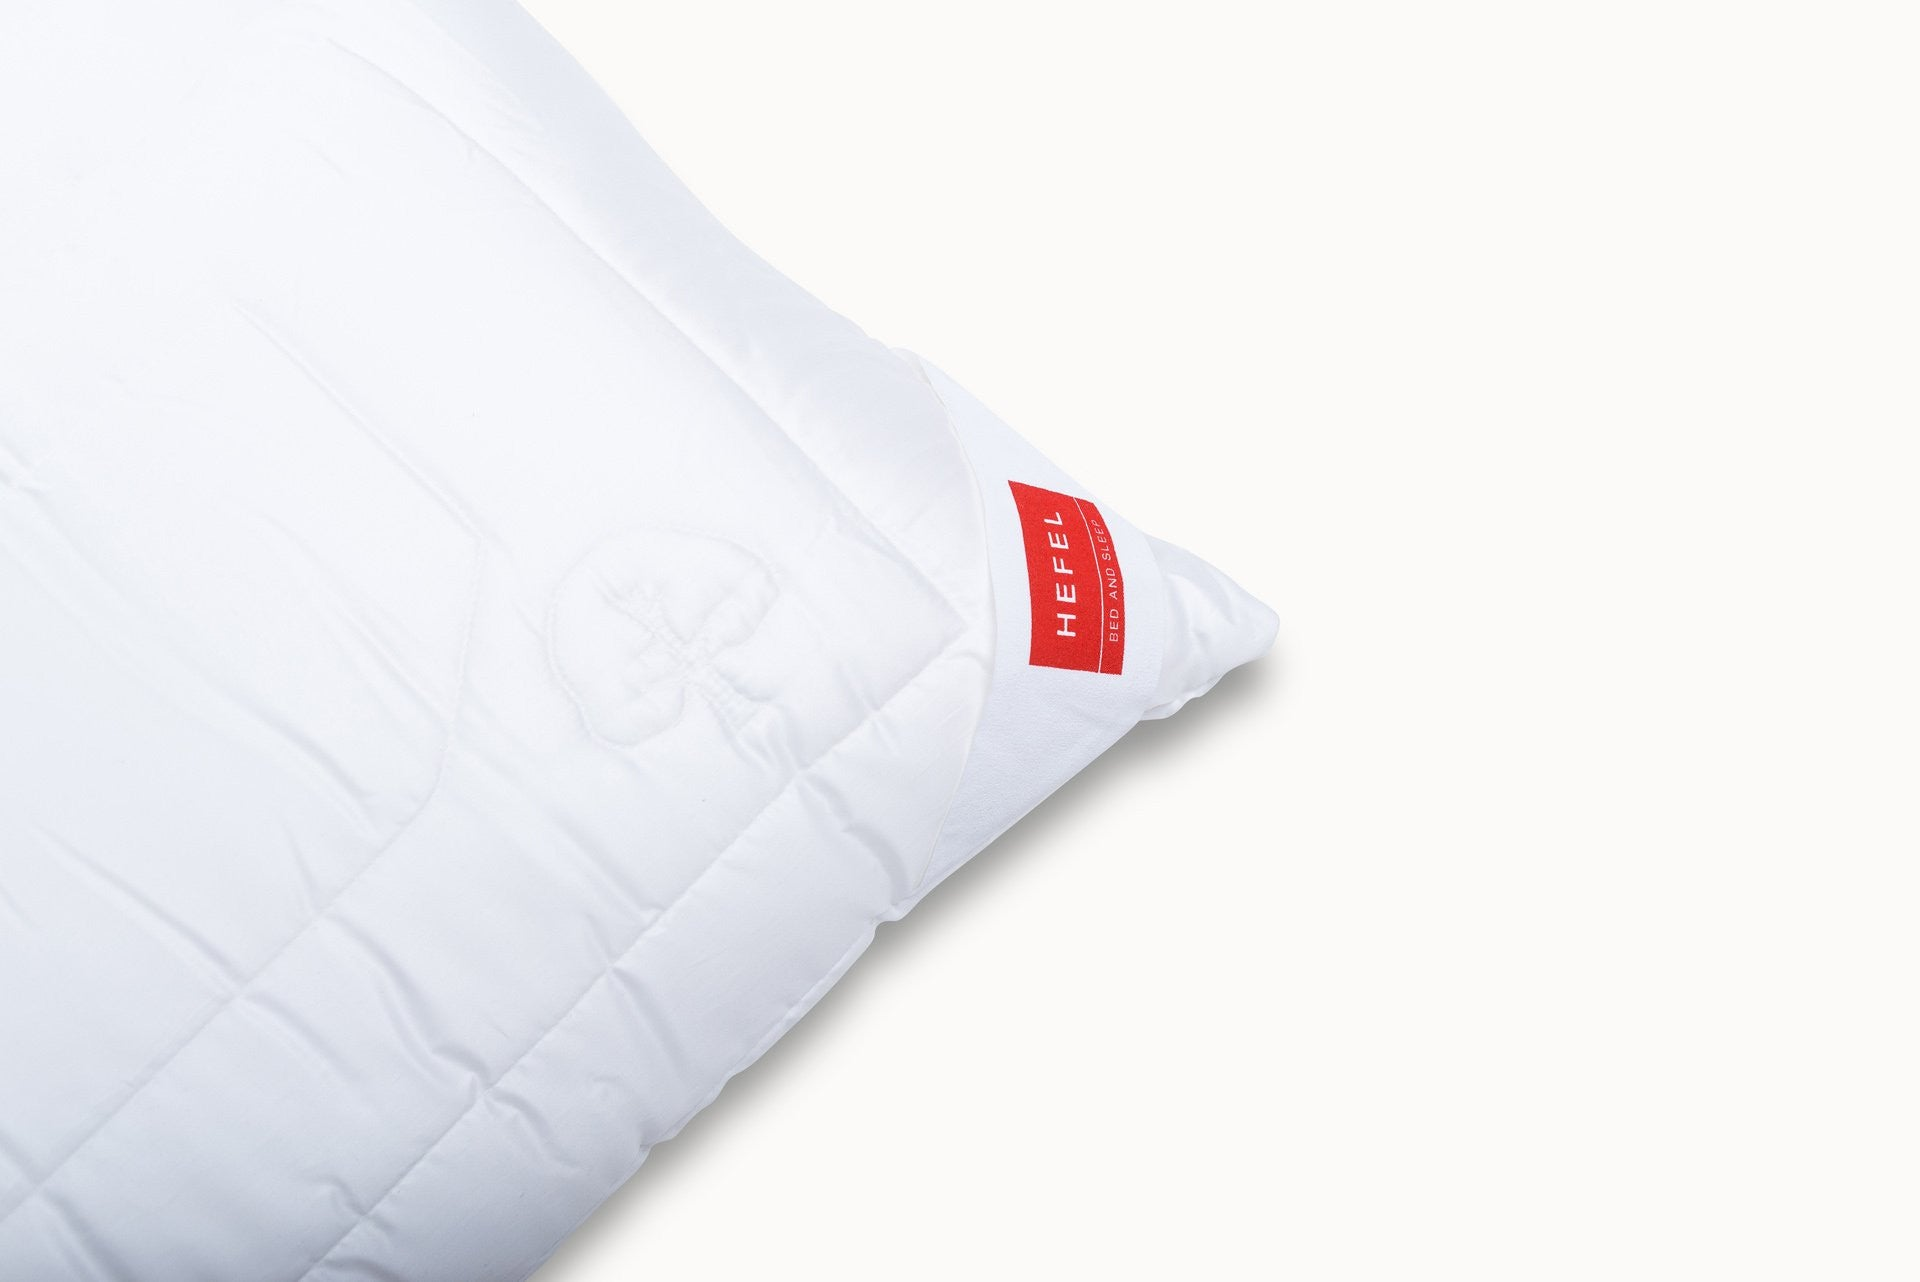 Klimacontrol (Tencel) Pillow - Healthy Bedroom